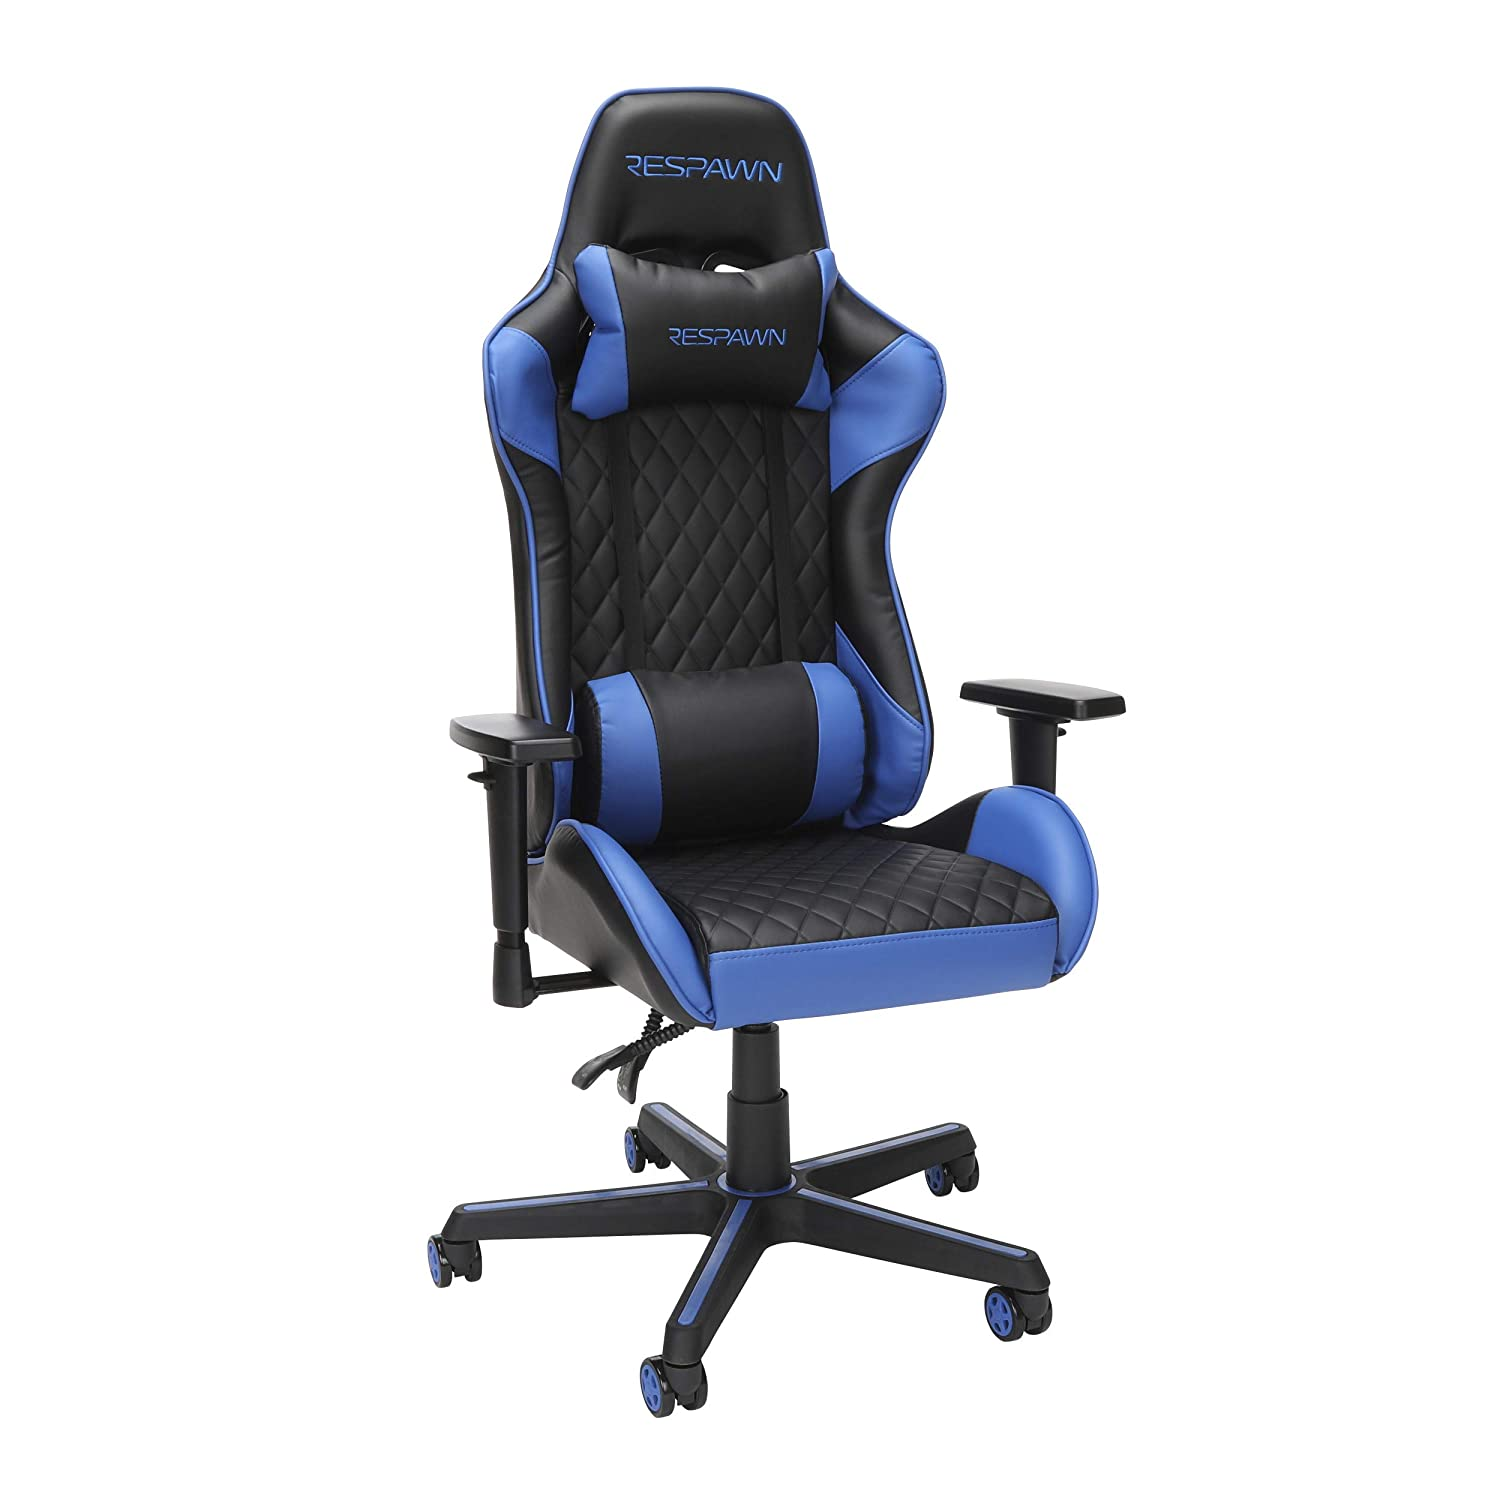 RESPAWN Ranking TOP16 100 Racing Style Gaming Chair in Blue RSP-100-BLU 40% OFF Cheap Sale